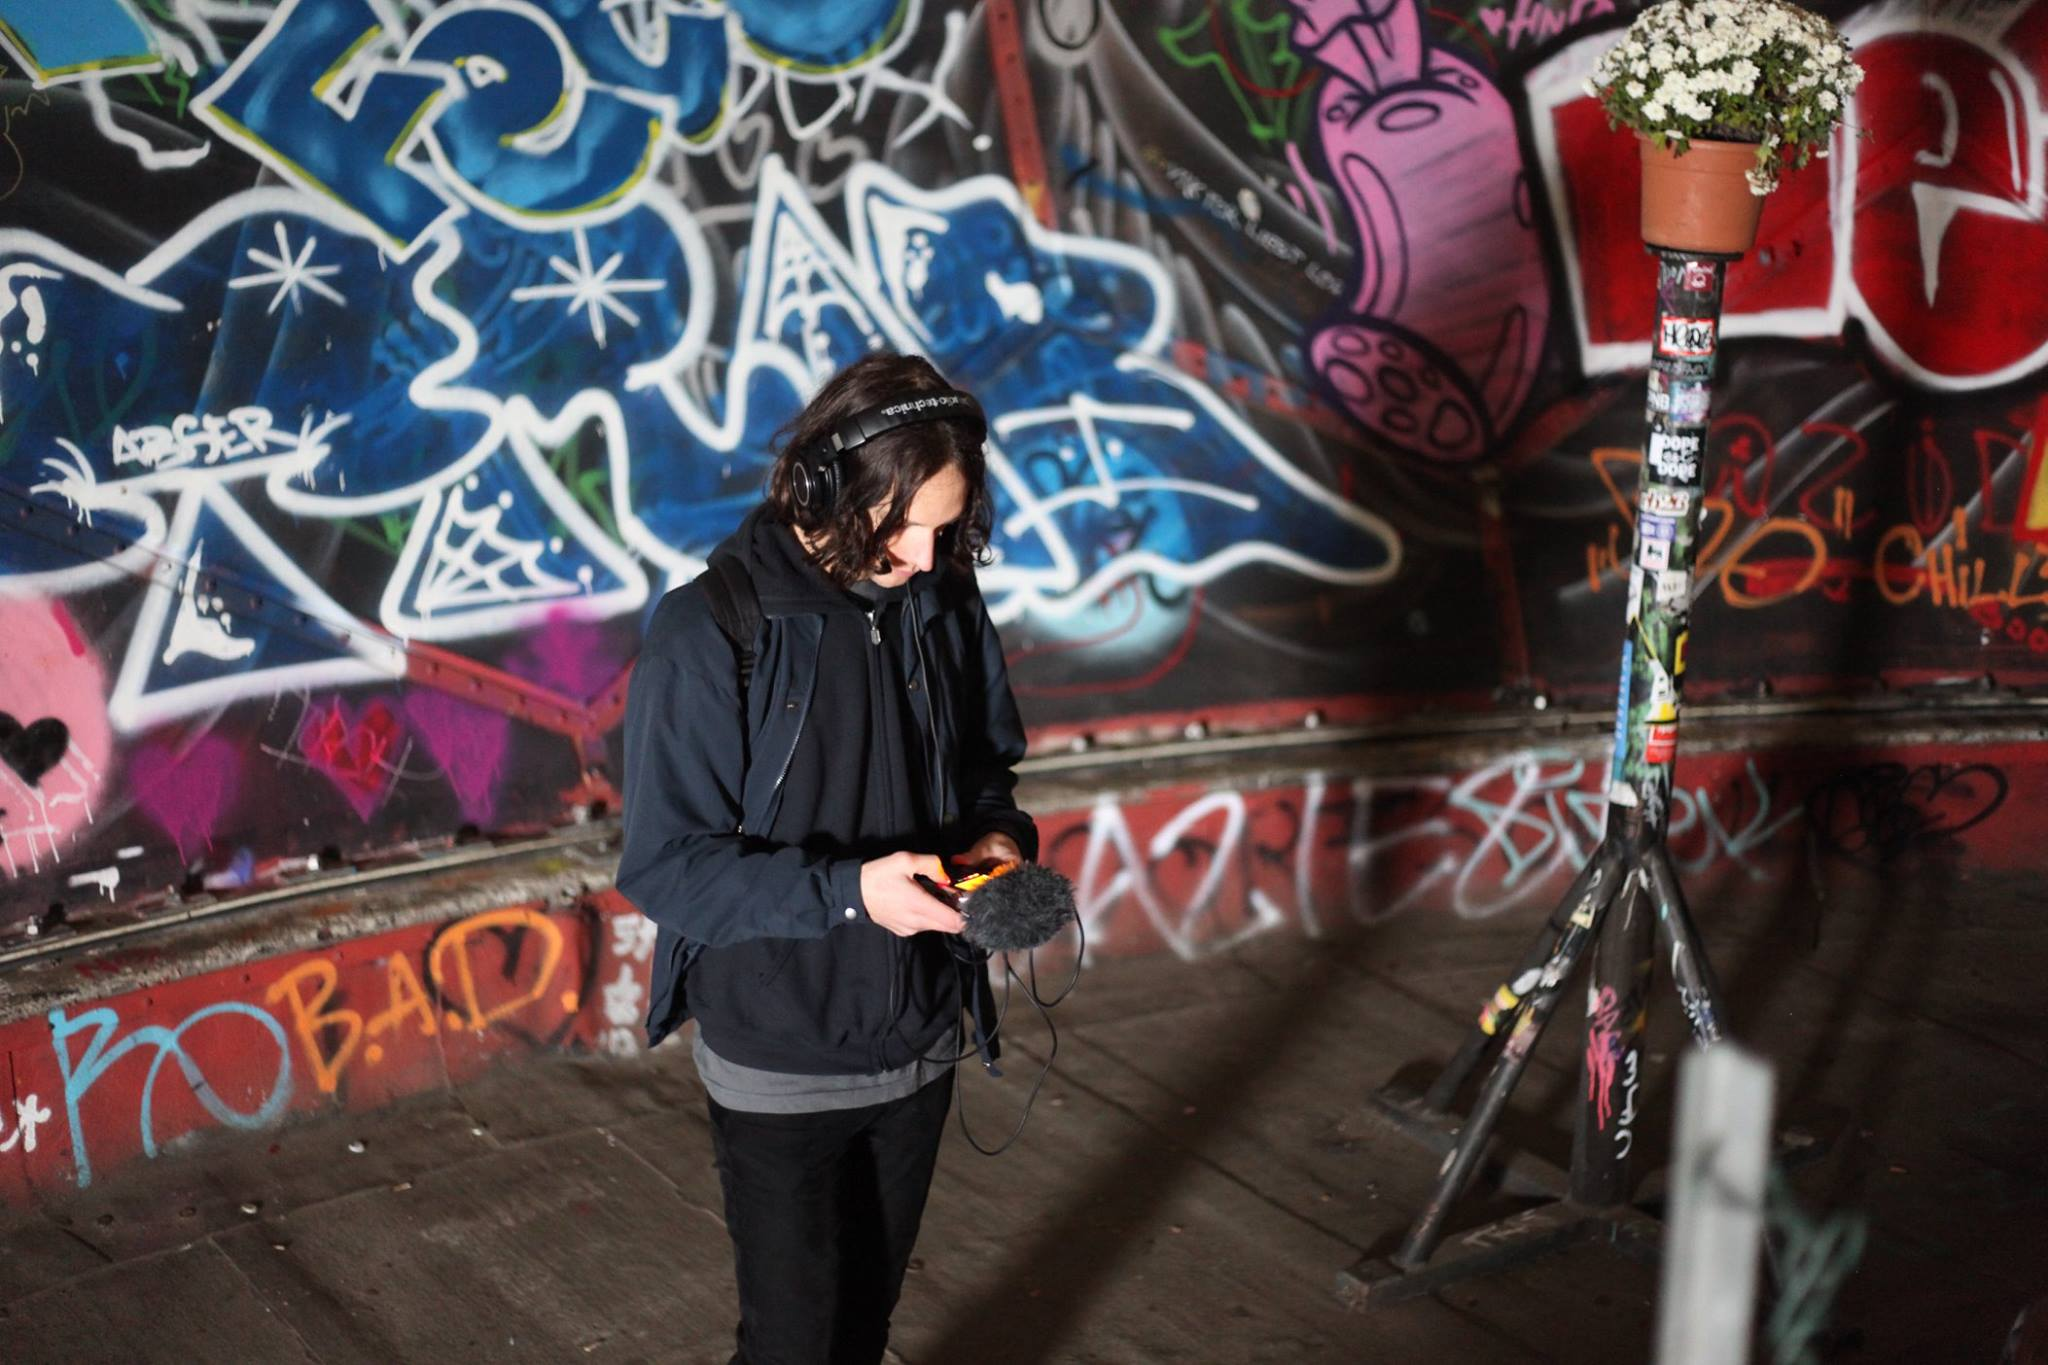 Berlinspiration: Students & Staff Share Their Favourite Field Recording Spots | dBs Berlin